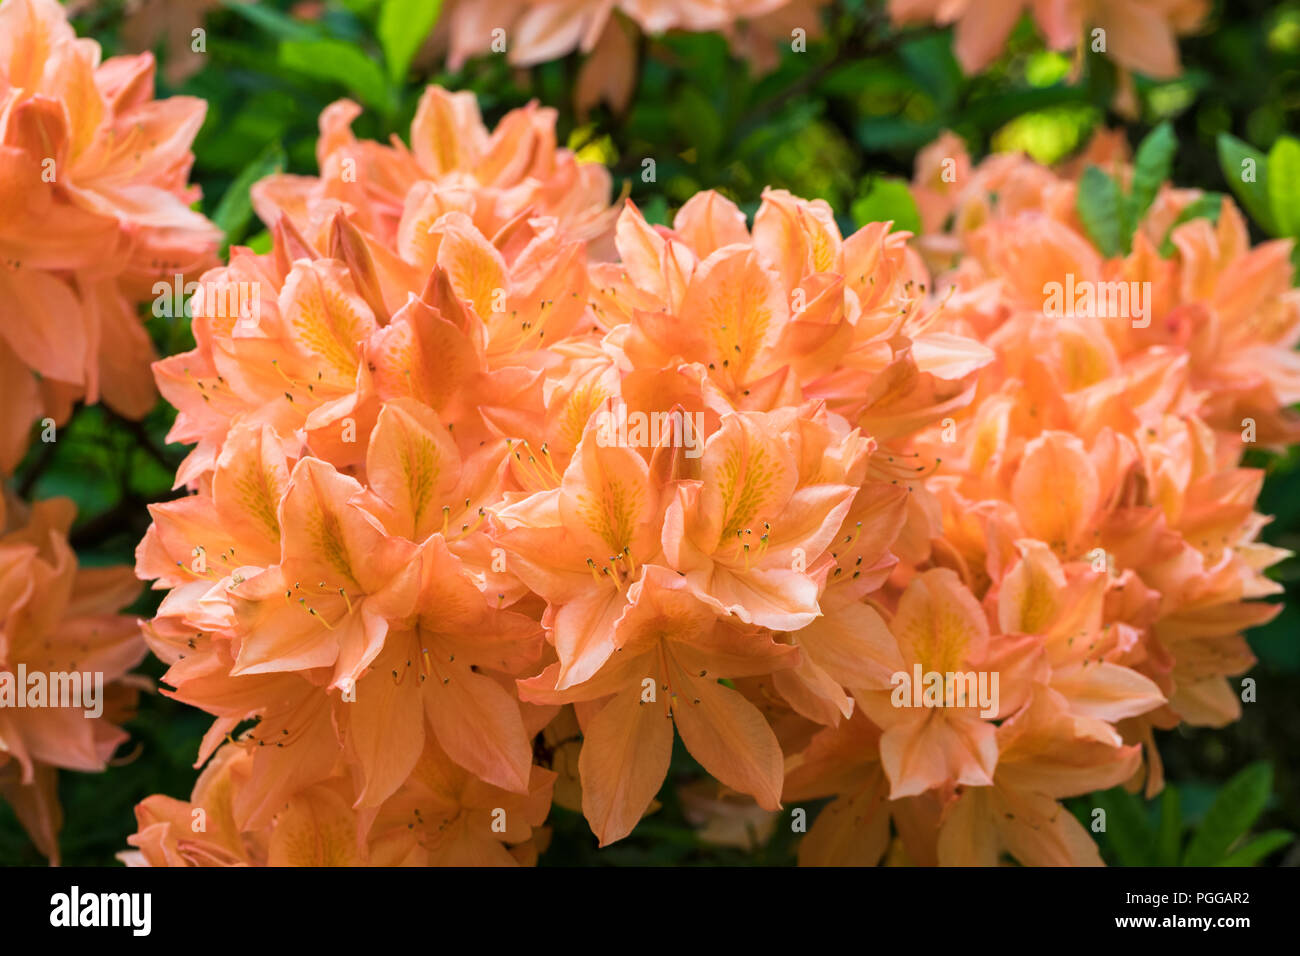 Close up of an Orange Rhododendron flowering in an English garden - Stock Image